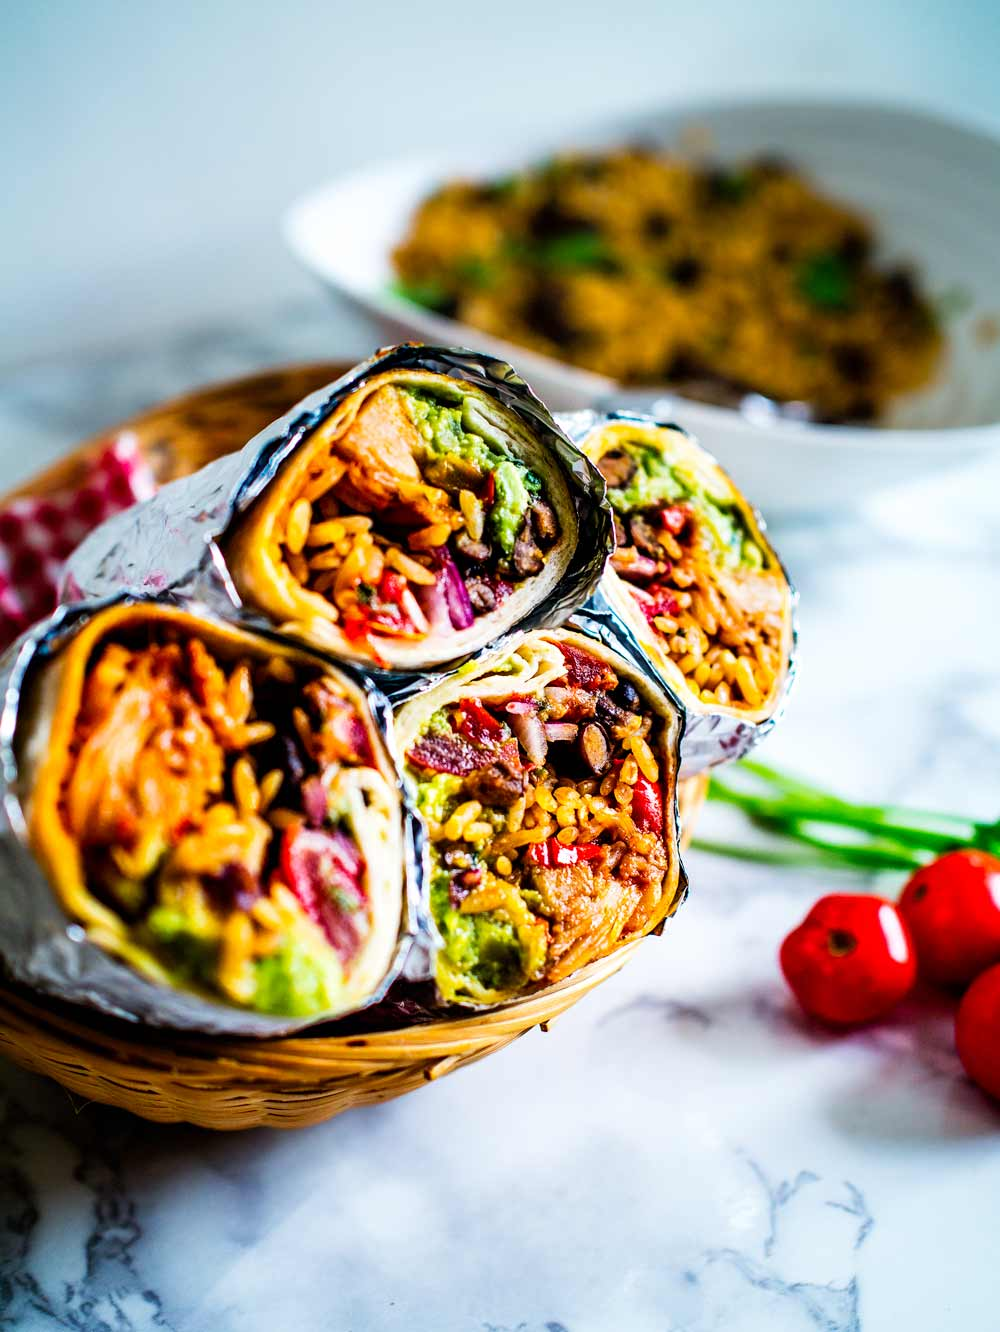 These epic vegan jackfruit burritos are filled with mexican rice, guacamole, refried black beans, pico de gallo and bbq jackfruit! Sumptuously satisfying!     #recipe #recipes #burrito #fajita #healthy #lunches #dinners #wrap #sauce #bean #freezer #filling #best #jackfruit #vegan #vegetarian #salsa